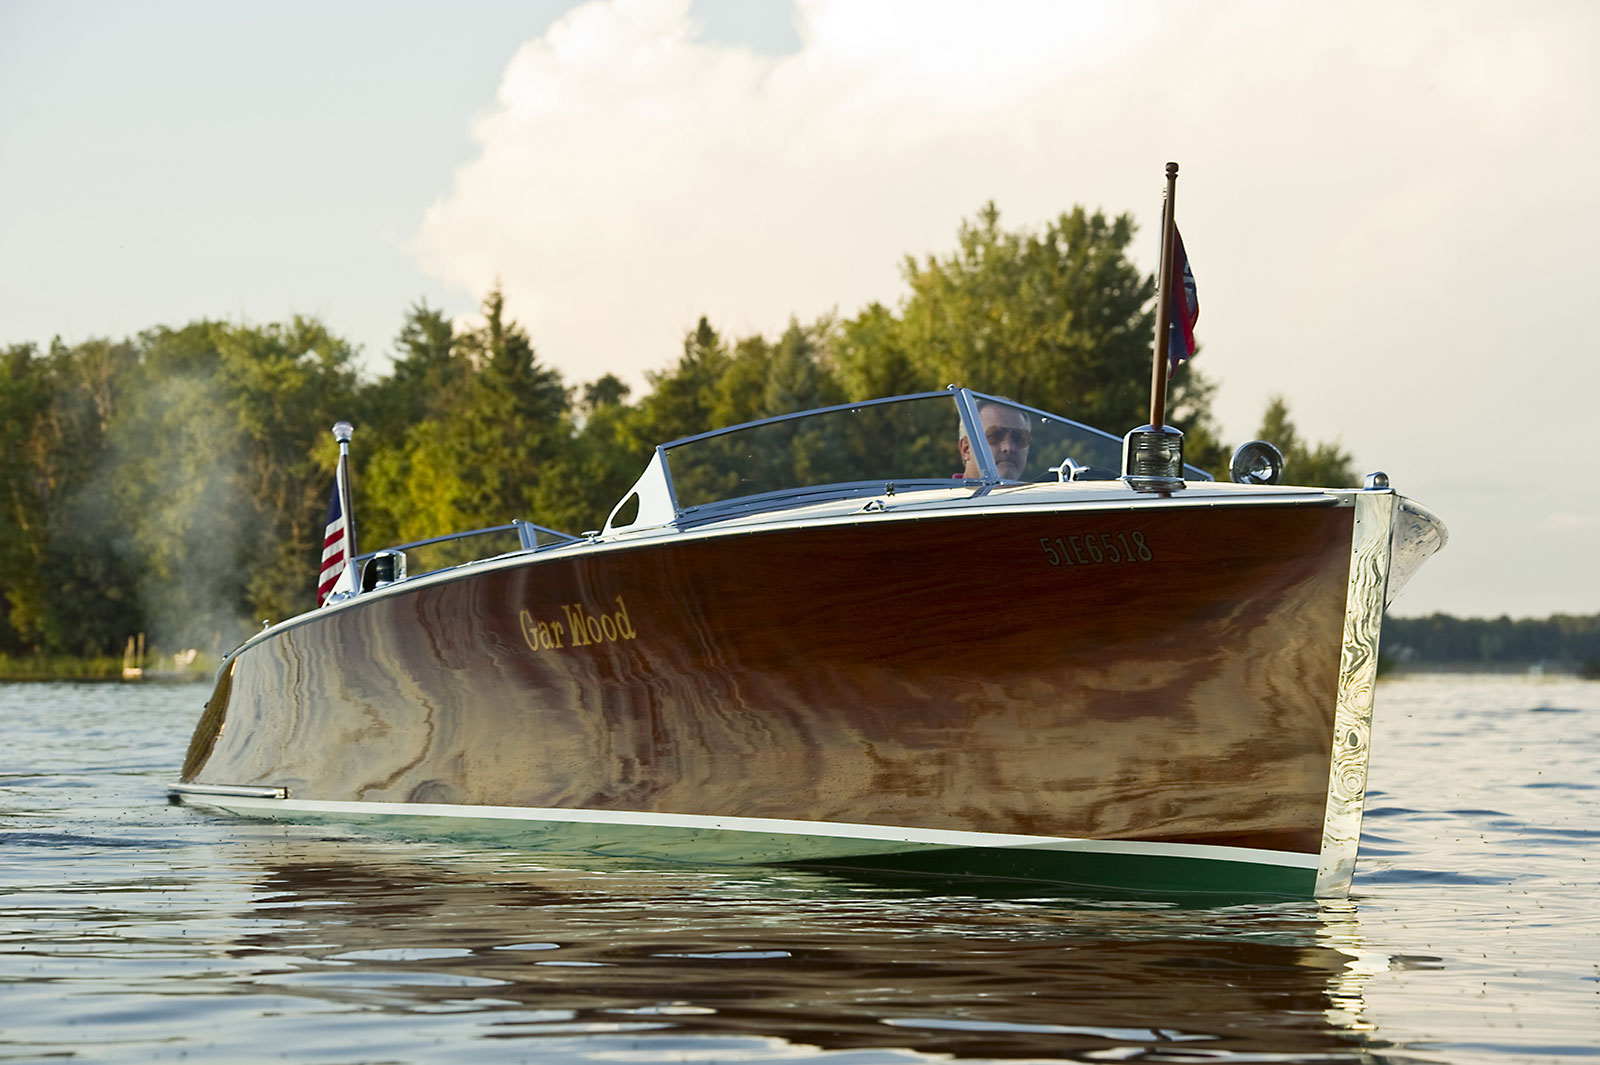 Why are classic boats more rare, yet worth less than classic cars? thumbnail